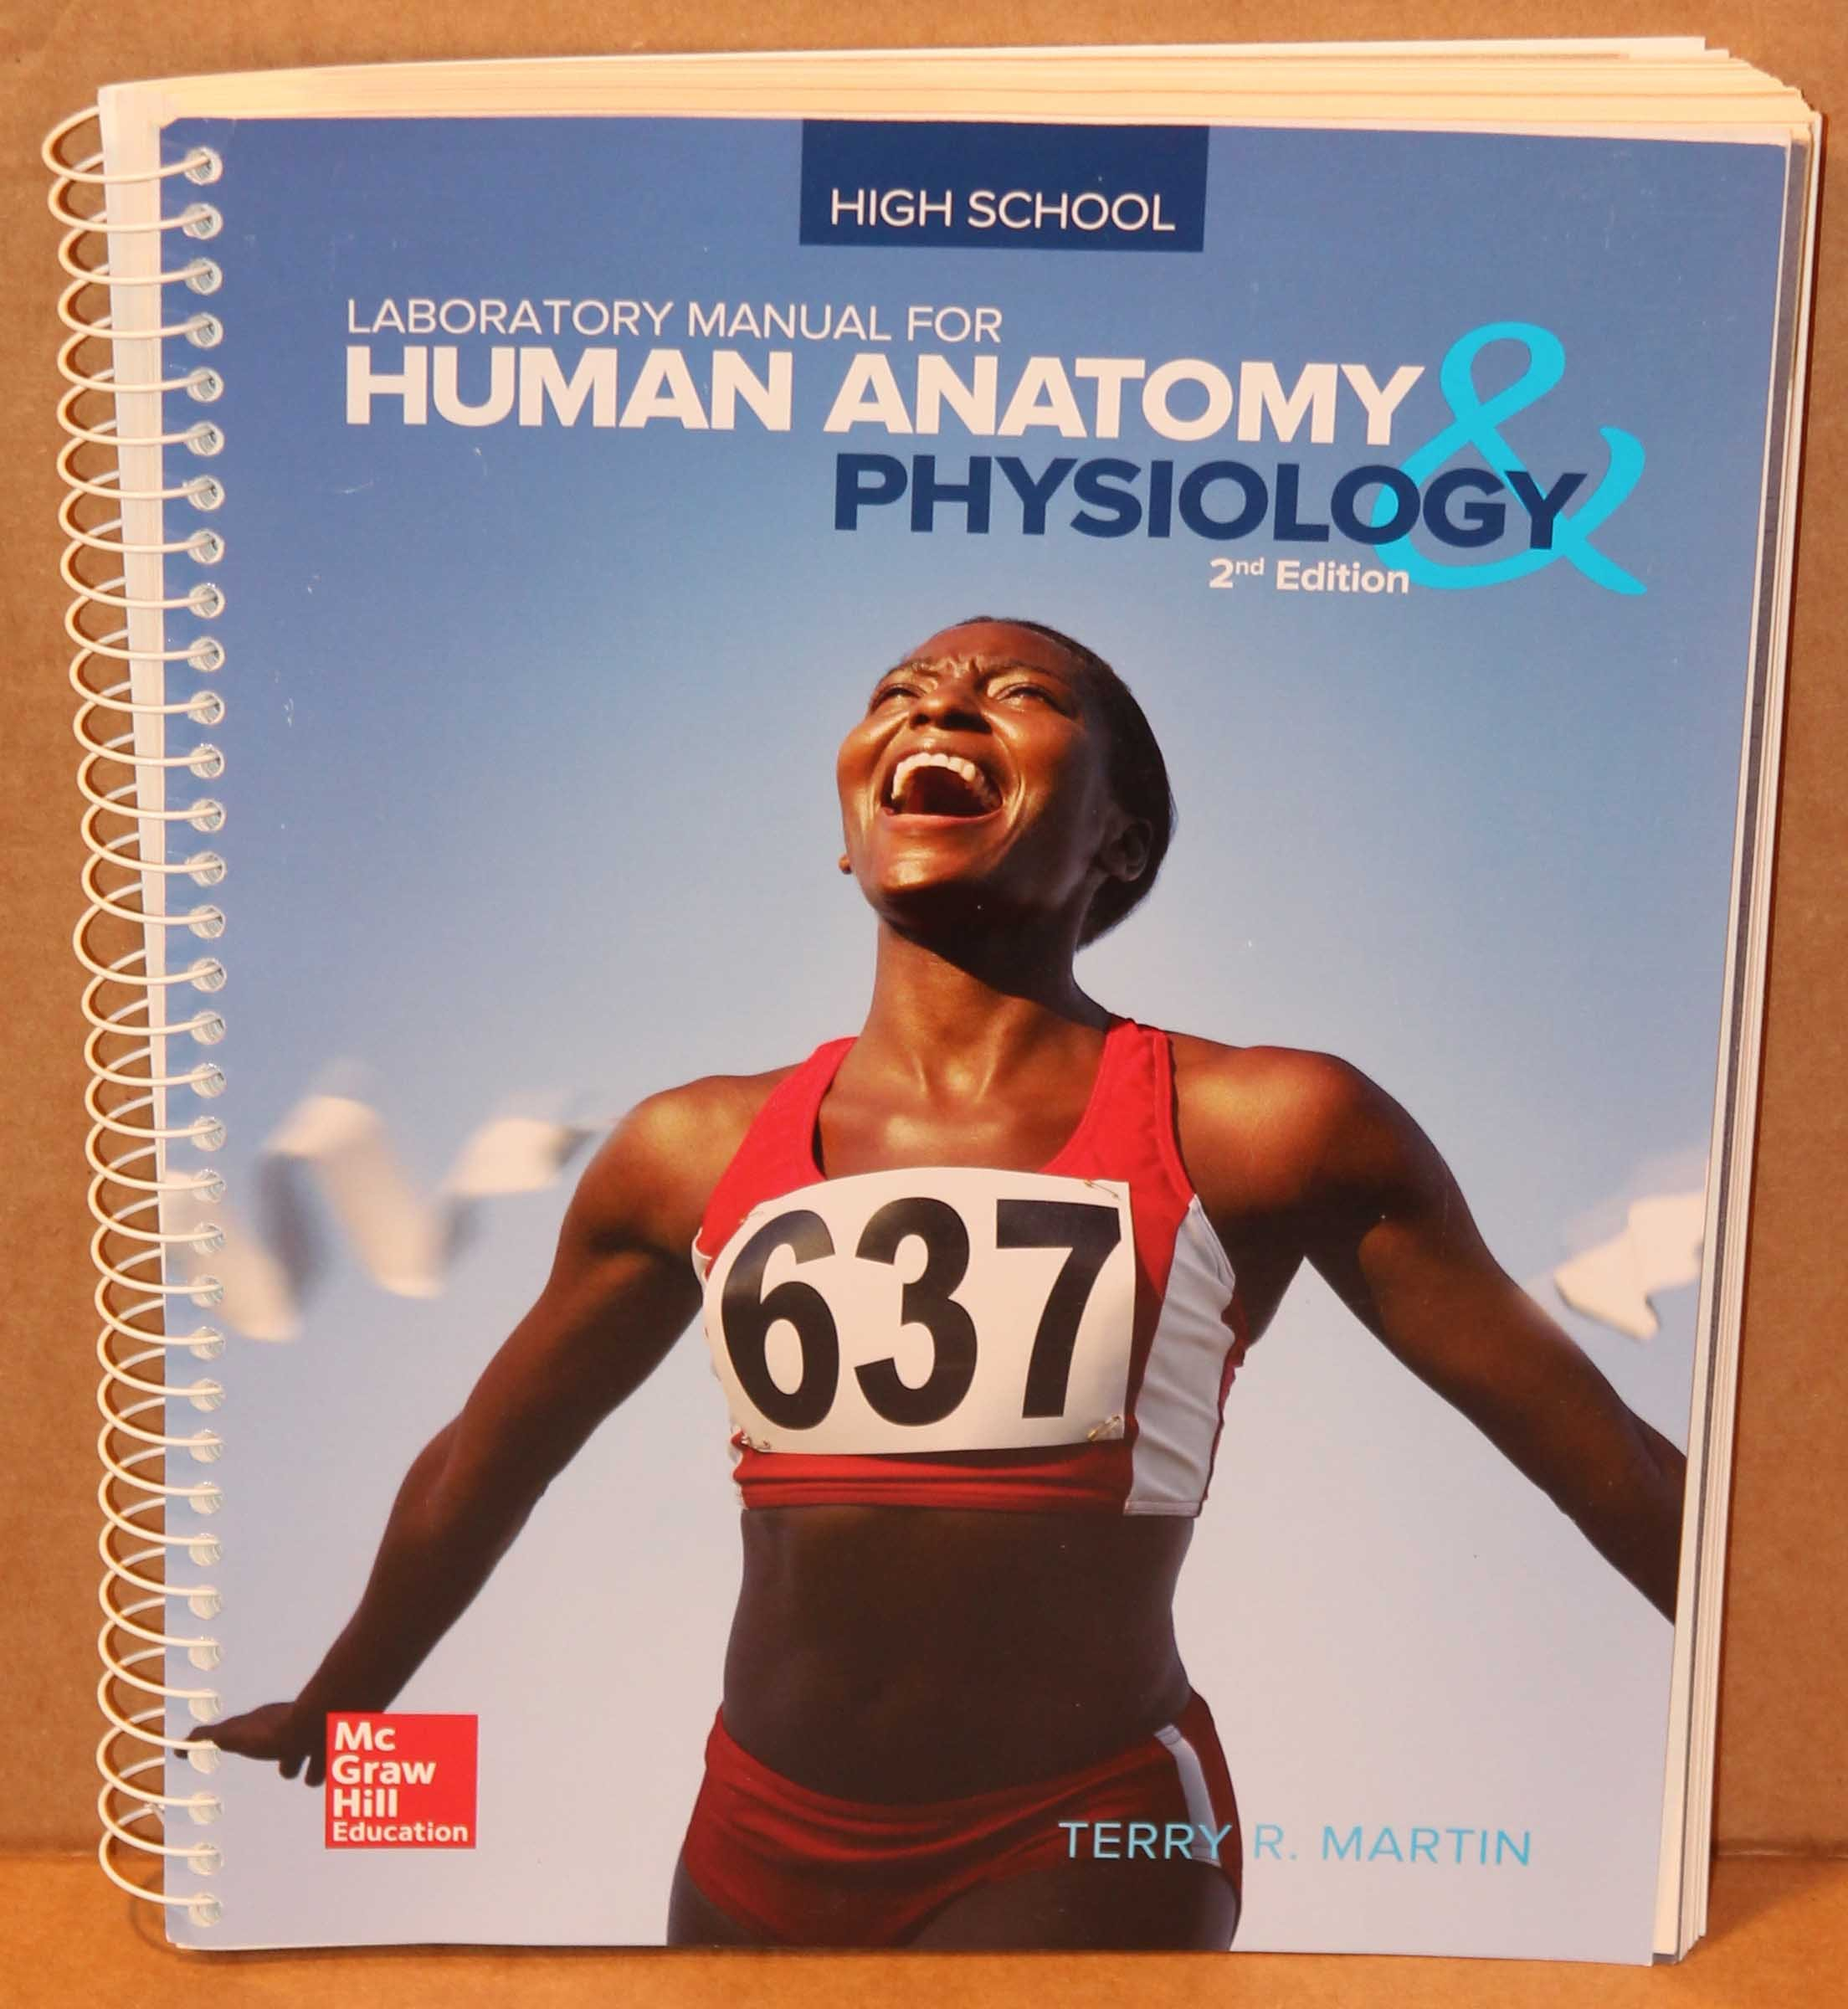 Laboratory Manual for Human Anatomy & Physiology: Terry R Martin ...